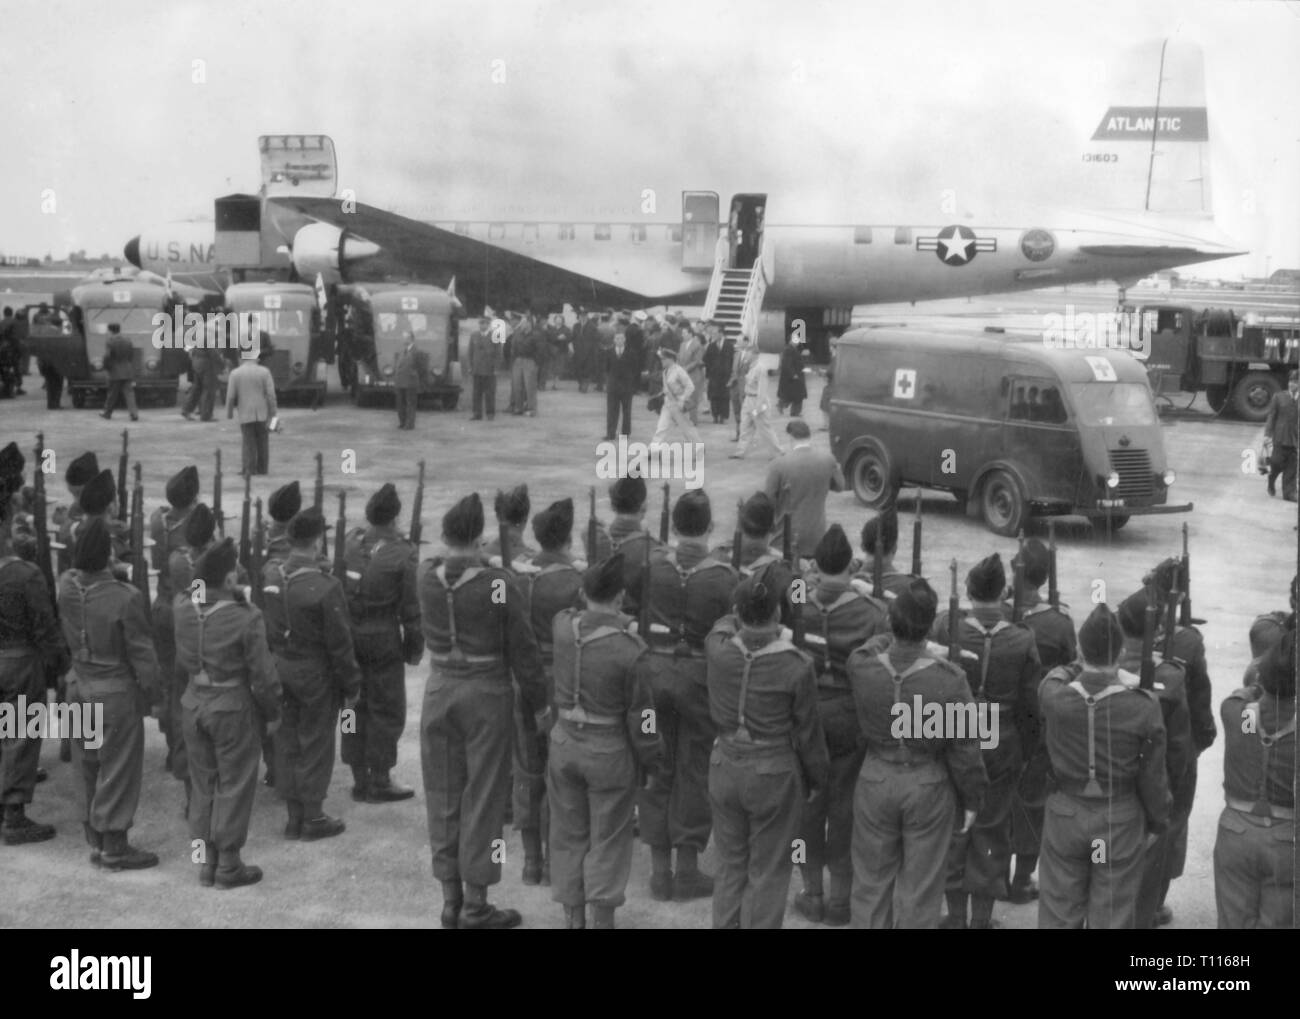 Indochina War 1946 - 1954, Battle of Dien Bien Phu, 13.3. - 7.5.1954, arrival seriously wounded soldiers at airport Orly, Paris, 3.7.1954, evacuation, evacuations, casualty, casualties, soldiers, soldier, military, guard of honour, guard of glory, military honour, welcoming, aircraft, USA, United States of America, US Air Force, wars, Indochina, France, colonial war, people, 20th century, 1950s, battle, battles, airport, airports, historic, historical, Additional-Rights-Clearance-Info-Not-Available - Stock Image